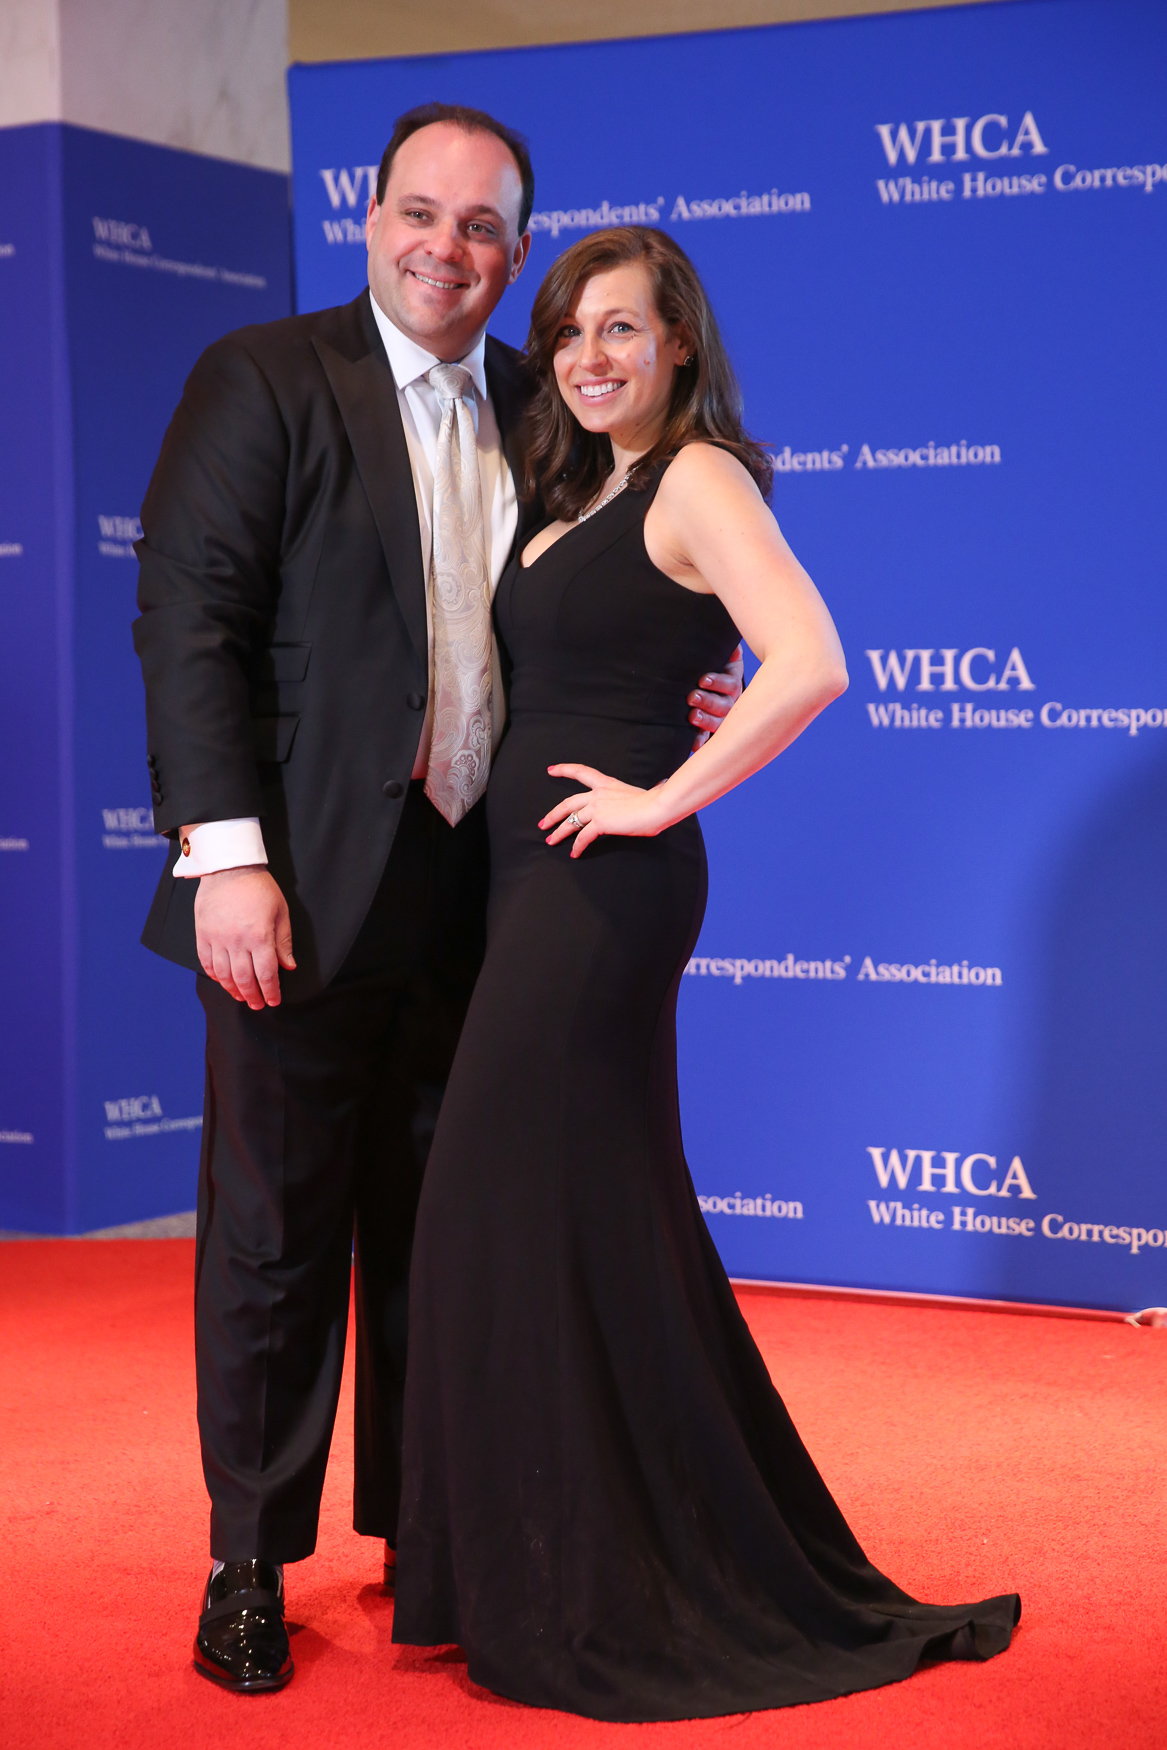 Boris Epshteyn and wife Lauren Tanick. (Amanda Andrade-Rhoades/DC Refined)